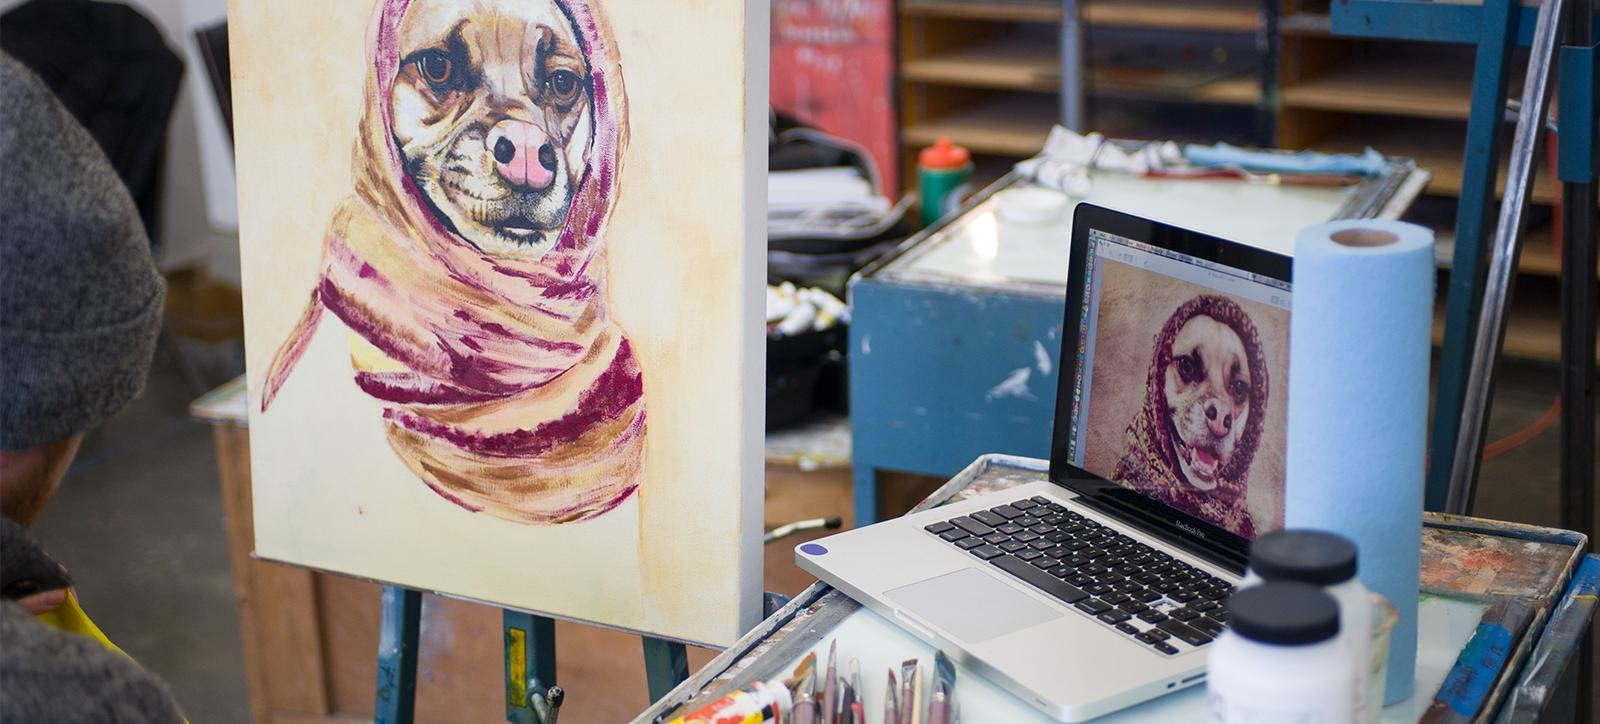 Student Painting pic of dog from computer